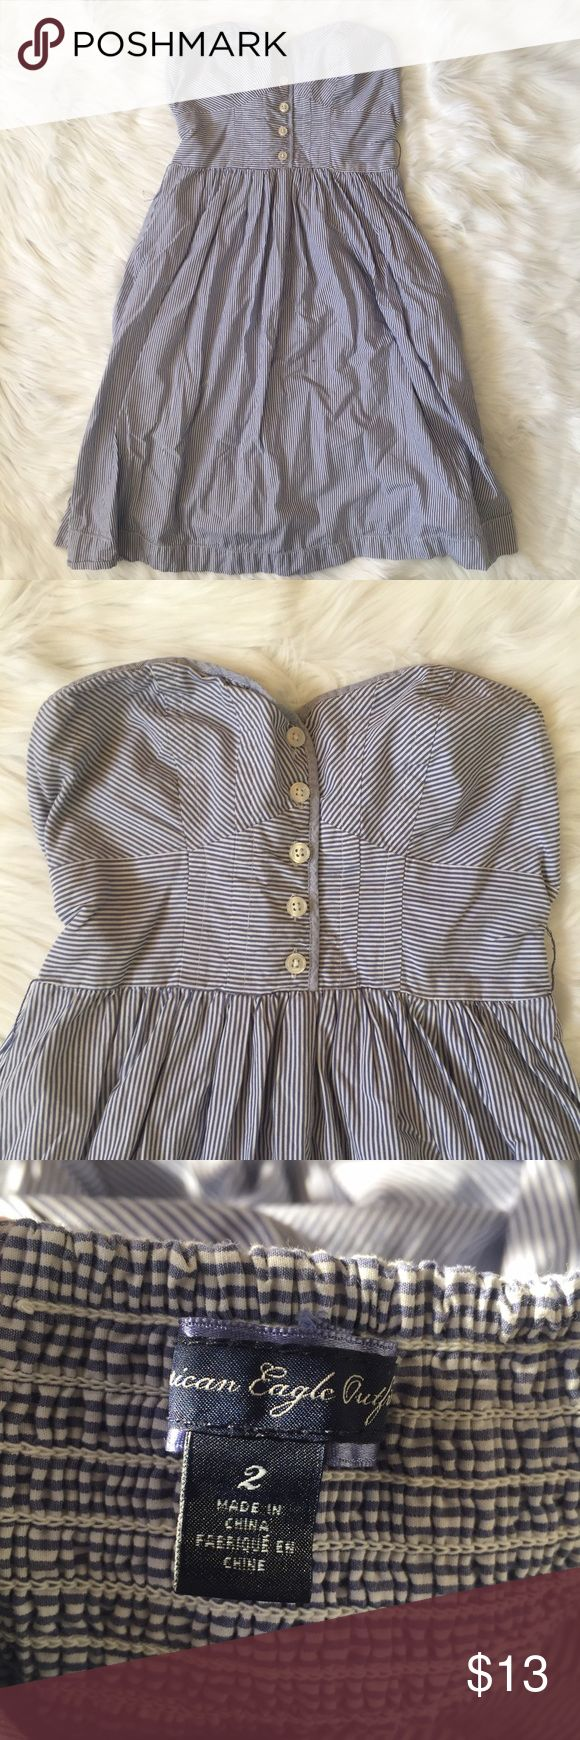 Striped American Eagle Dress Beautiful American Eagle blue and white striped dress. Can be either strapless or straps can be attached. Size 2. Feel free to ask any additional questions.   💕 please make offers through offer button 💰 bundle for a 20% off discount  🚬🐶 smoke & pet free home  🚫 sorry no trades American Eagle Outfitters Dresses Strapless